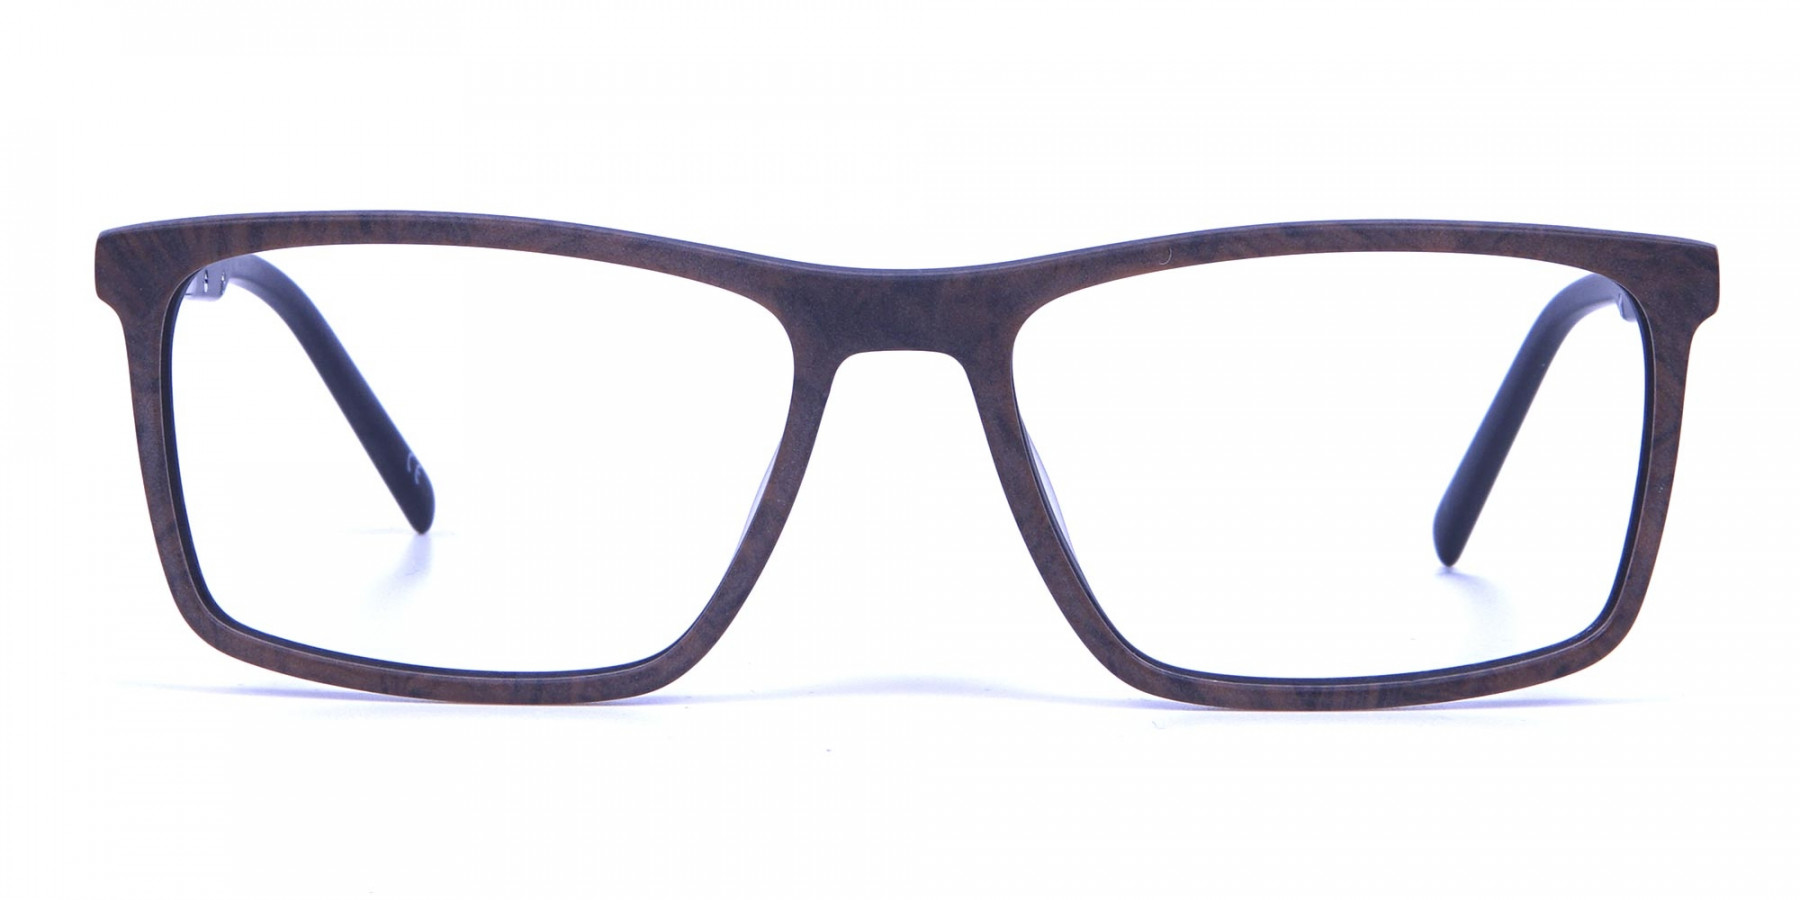 Wooden Texture Brown Rectangular Glasses for men and women